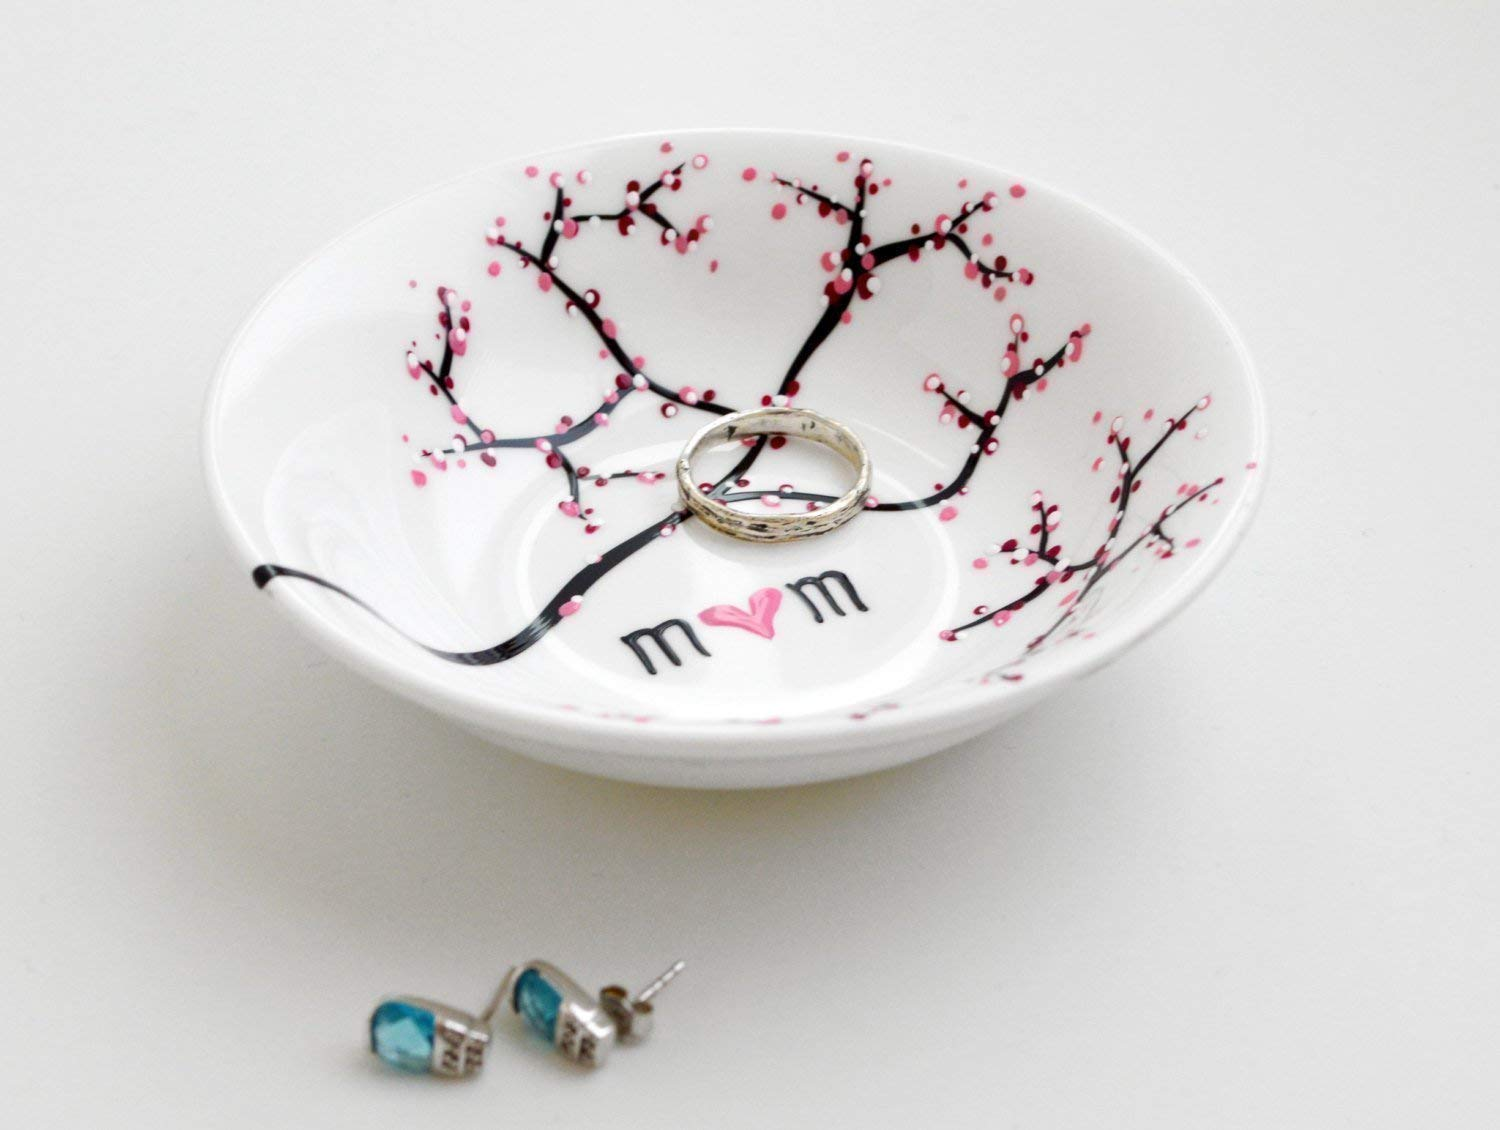 Ring Dish, Cherry Blossom Branch Jewelry Bowl, Personalized Gift For Mom, Personalized Jewelry Bowl